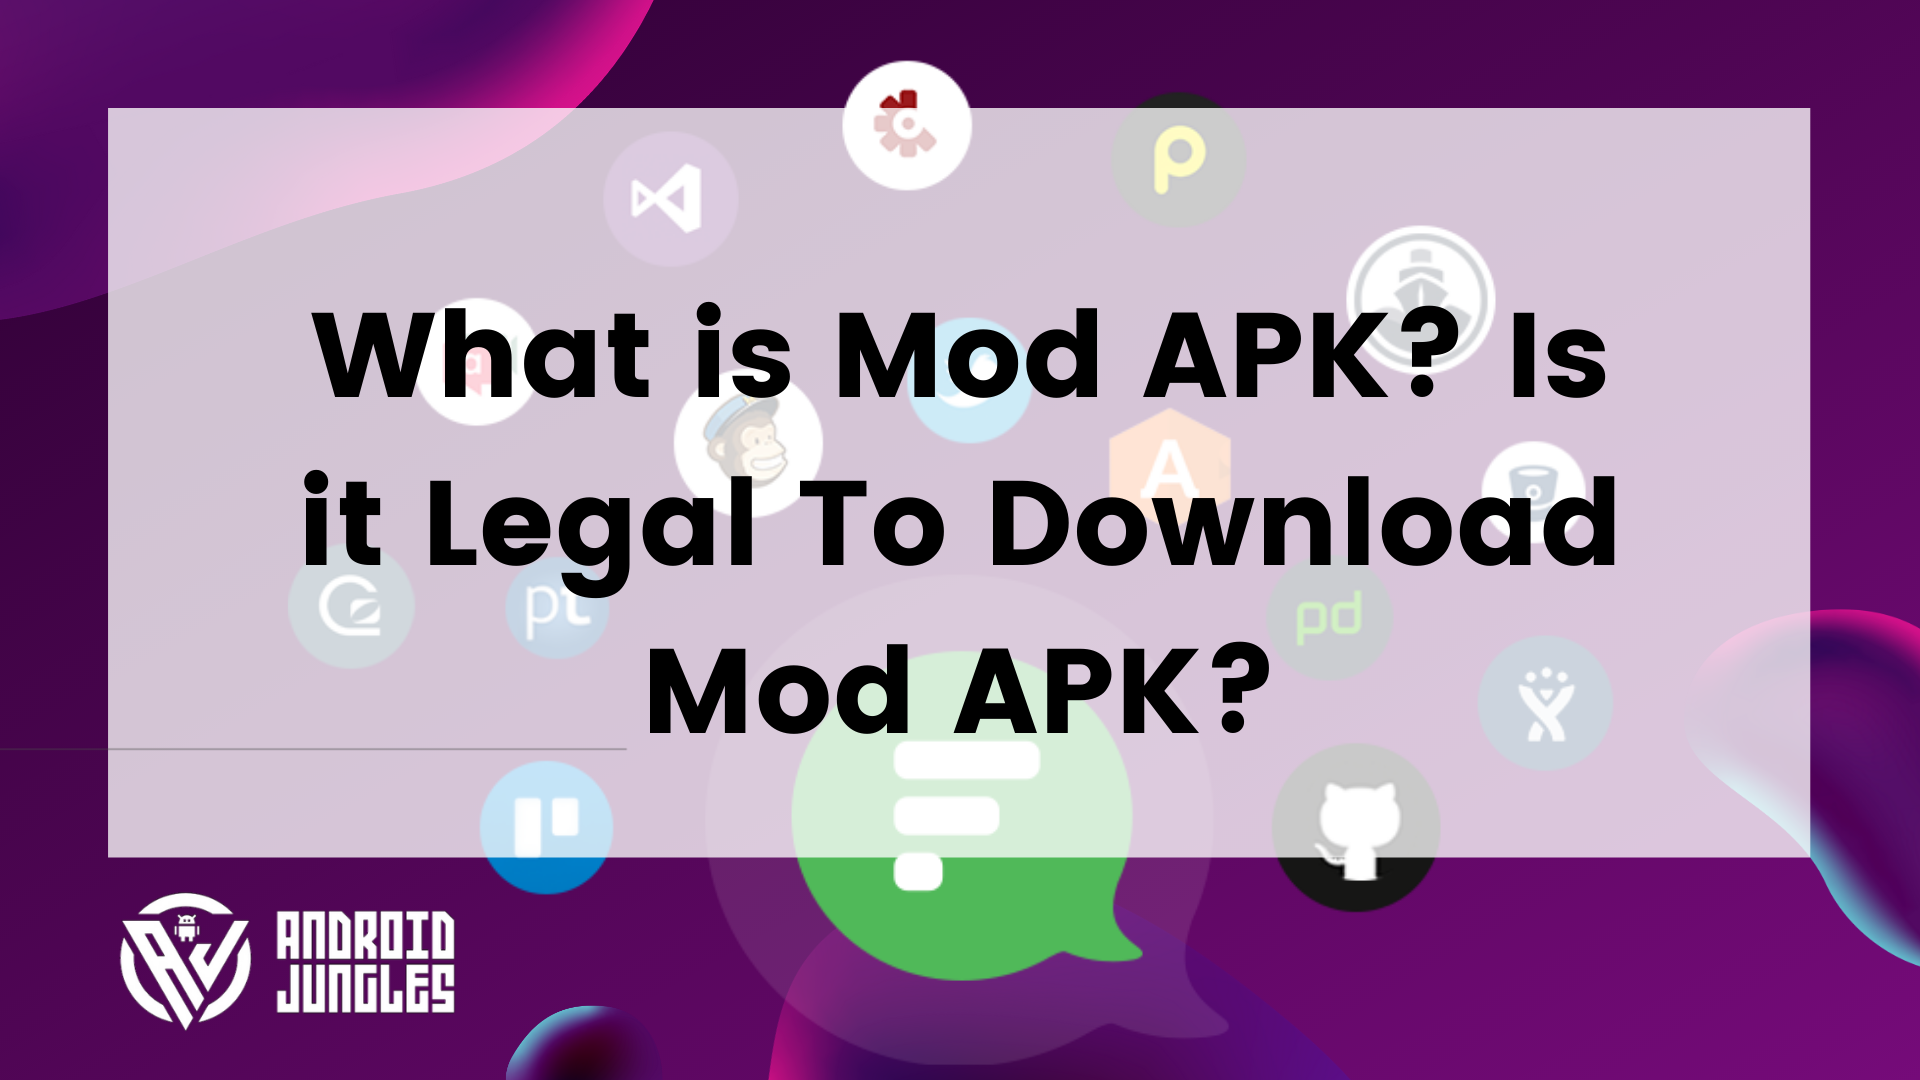 What is Mod APK? Is it Legal To Download Mod APK?